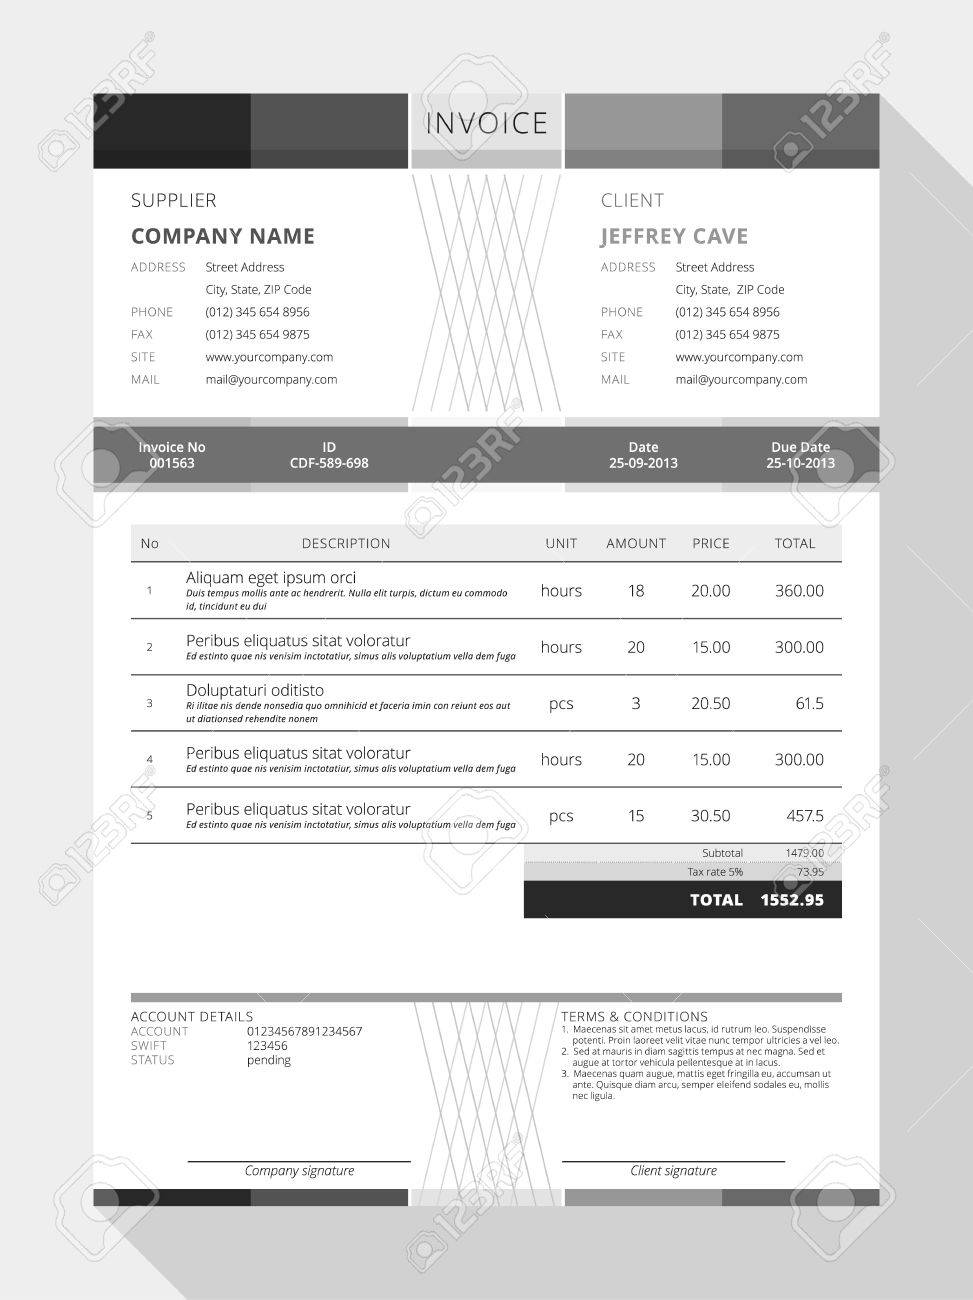 Usdgus  Pretty Design An Invoice  Professional Graphic Design Invoice  With Hot Vector Customizable Invoice Form Template Design Vector   Design An Invoice With Alluring Online Receipt For Lic Premium Also Customised Receipt Books In Addition Receipt Of Rent Payment Template And Rental Receipts Template As Well As Receipts For Rental Property Additionally Tenancy Deposit Receipt From Happytomco With Usdgus  Hot Design An Invoice  Professional Graphic Design Invoice  With Alluring Vector Customizable Invoice Form Template Design Vector   Design An Invoice And Pretty Online Receipt For Lic Premium Also Customised Receipt Books In Addition Receipt Of Rent Payment Template From Happytomco